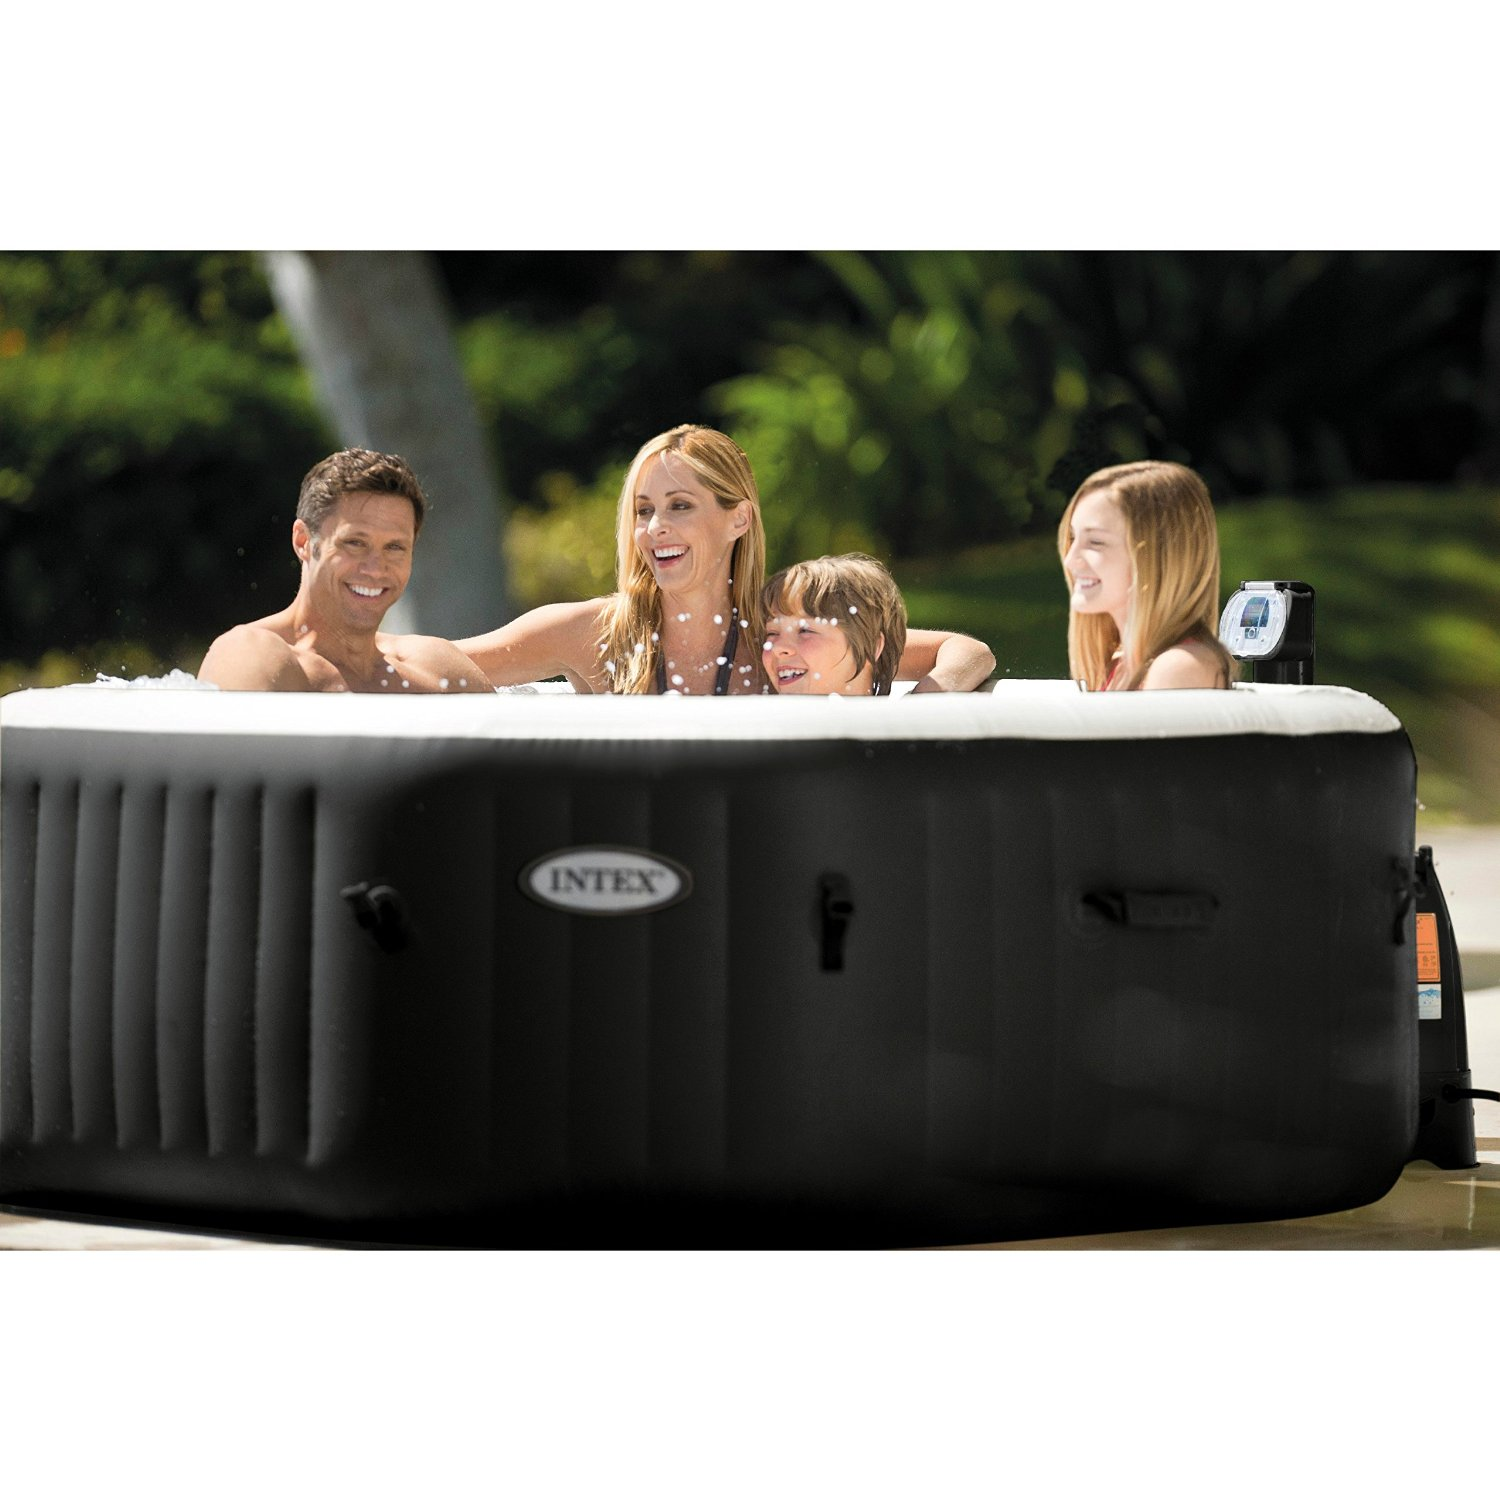 intex purespa jet and bubble deluxe portable hot tub review laze up. Black Bedroom Furniture Sets. Home Design Ideas